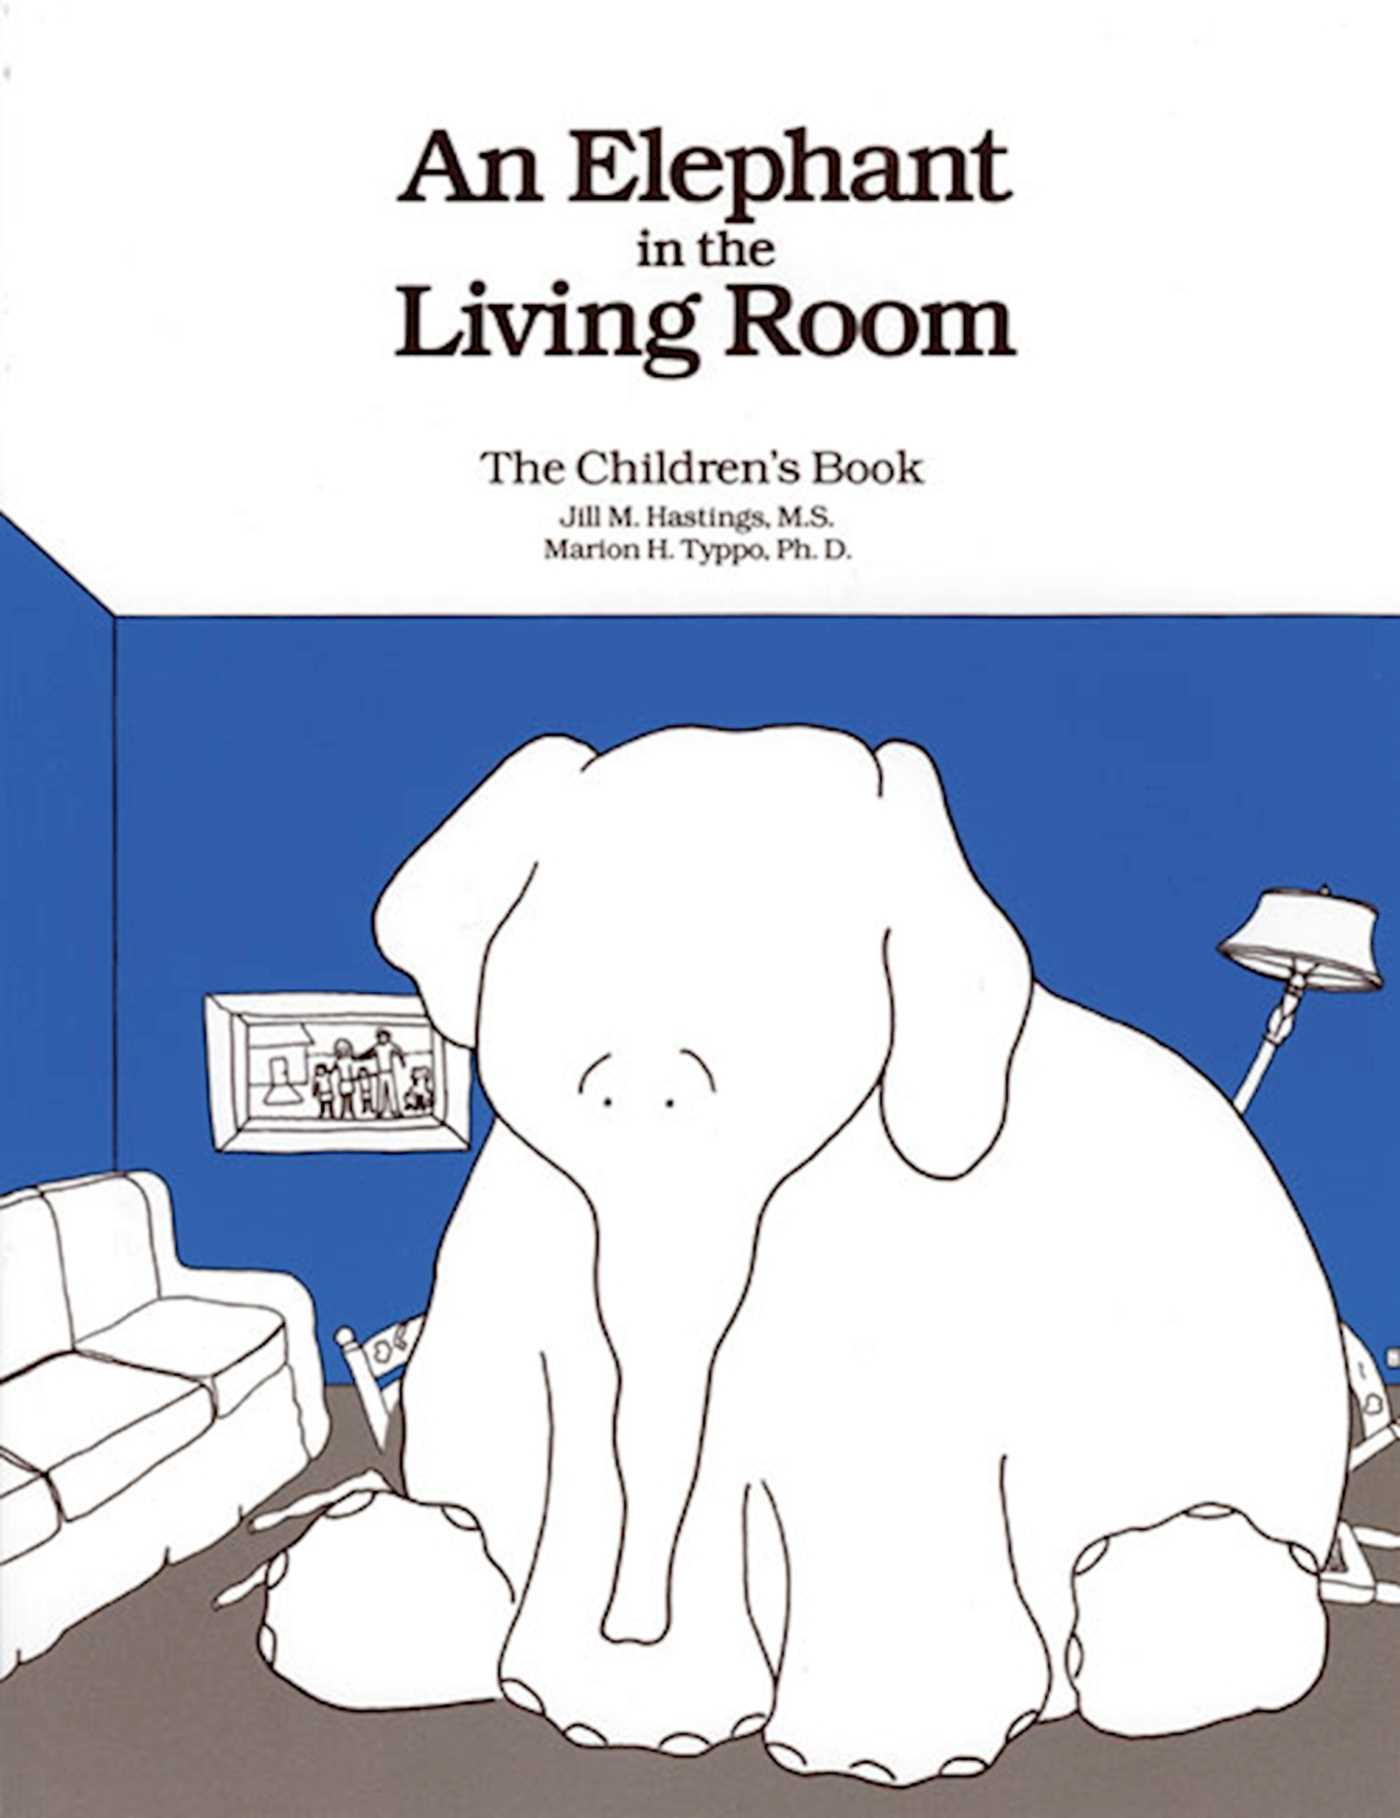 an elephant in the living room the children u0027s book book by